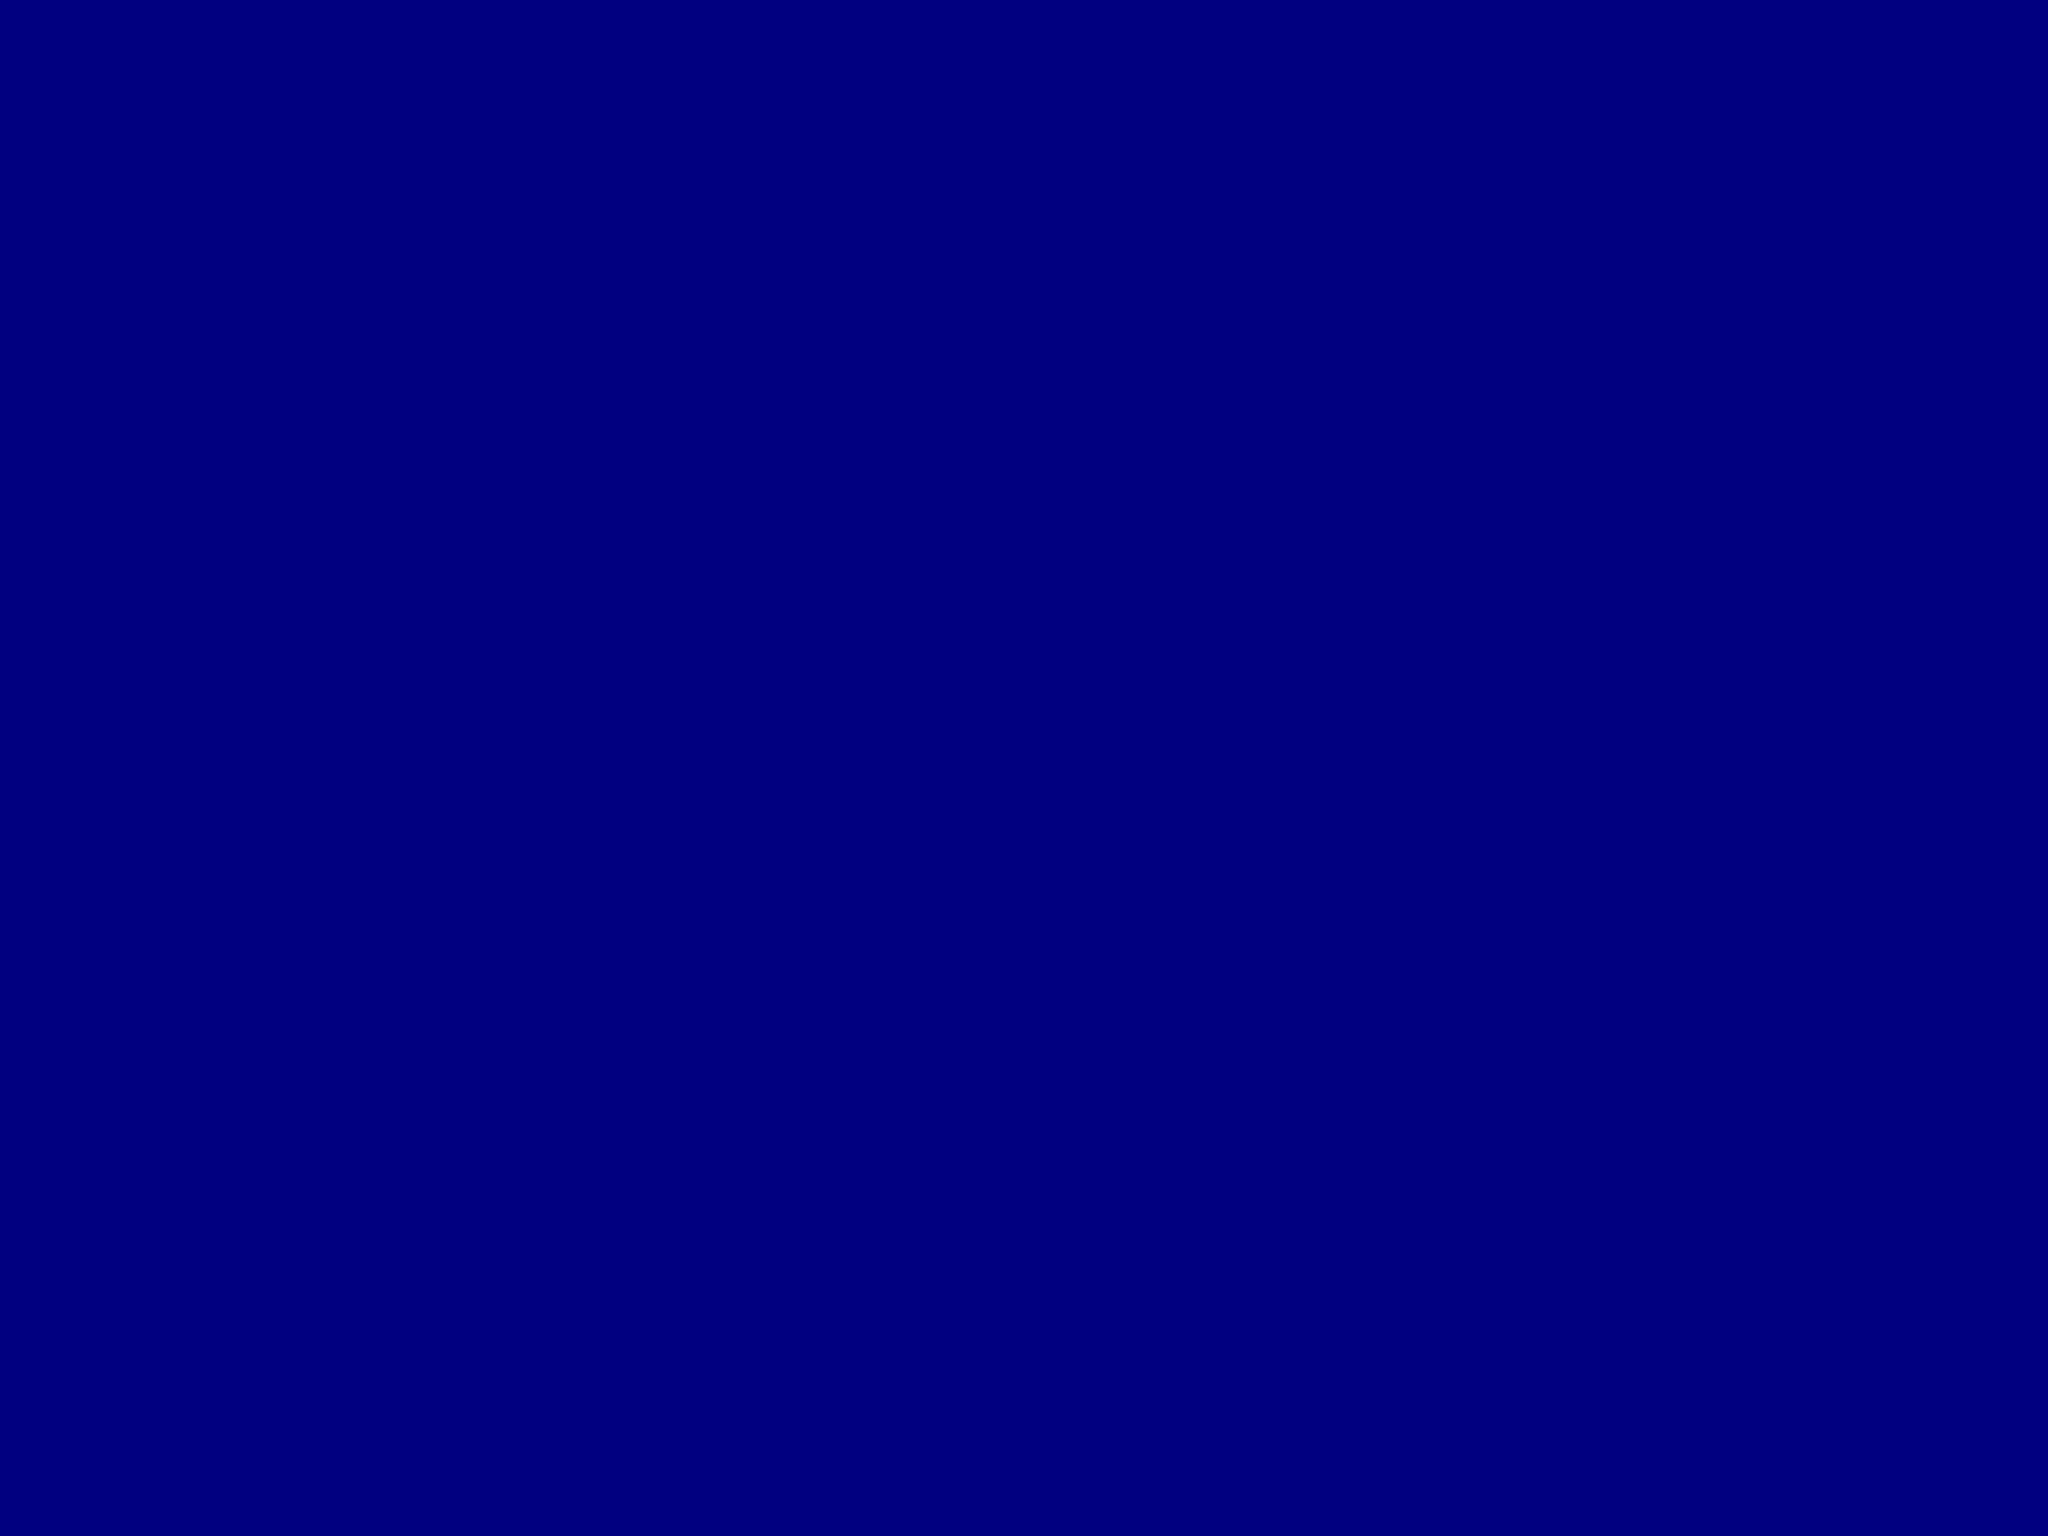 Solid Navy Blue Backgrounds Images Pictures   Becuo 2048x1536